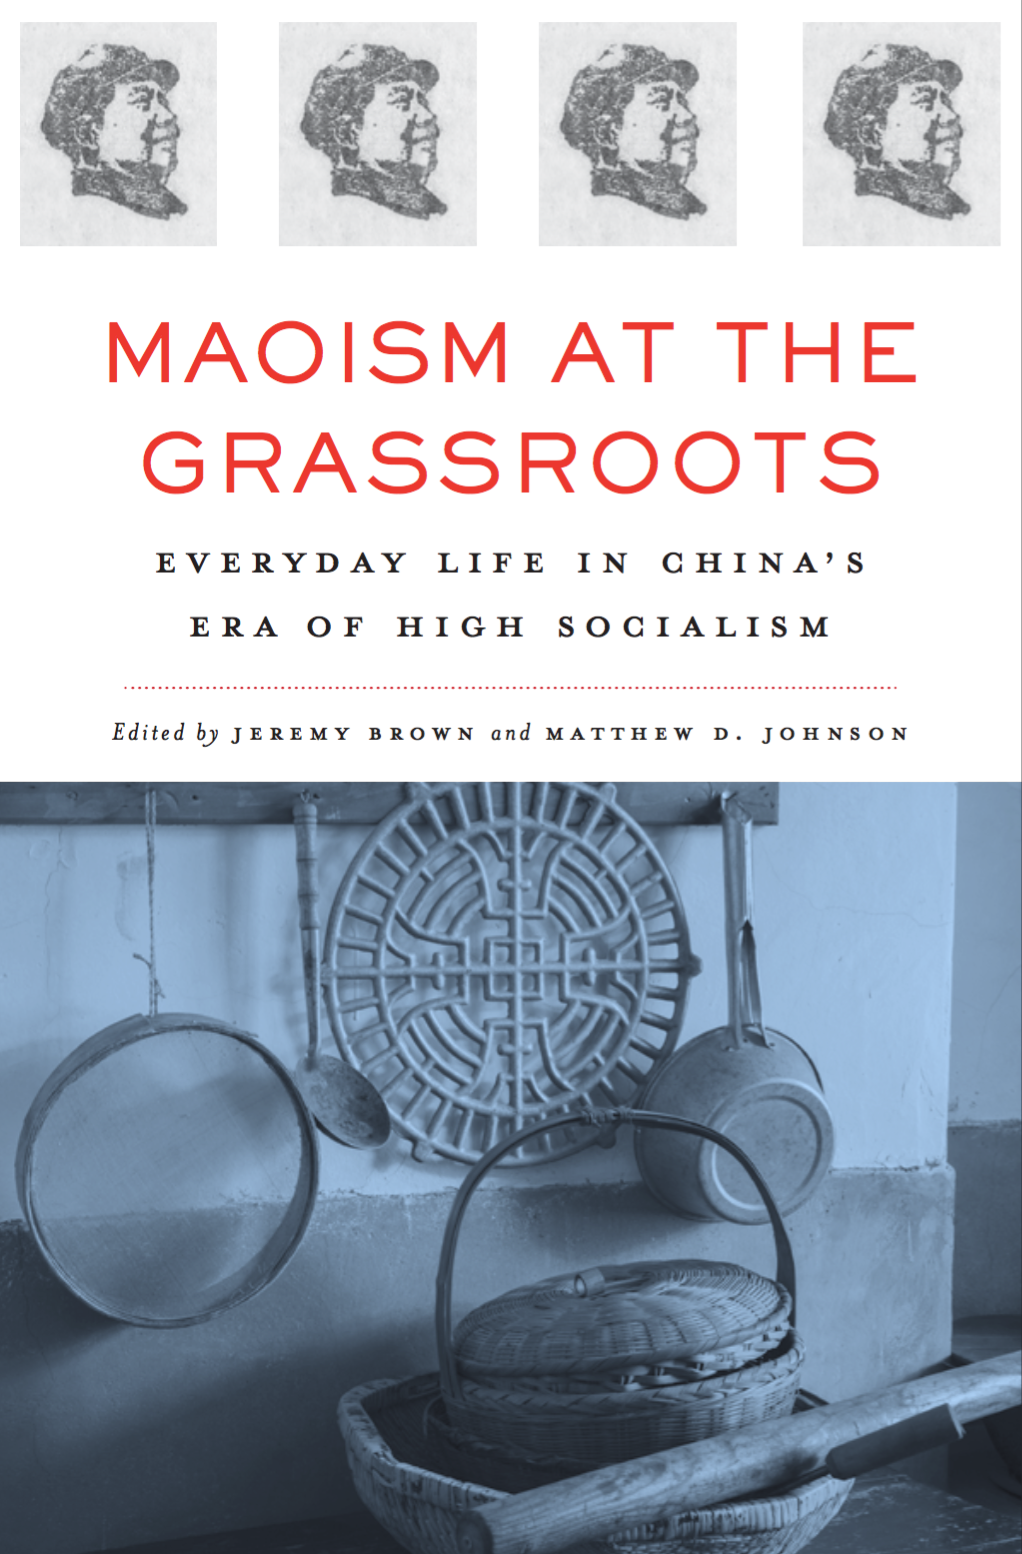 Book Cover of Maoism at the Grassroots by Jeremy Brown and Matthew Johnson.